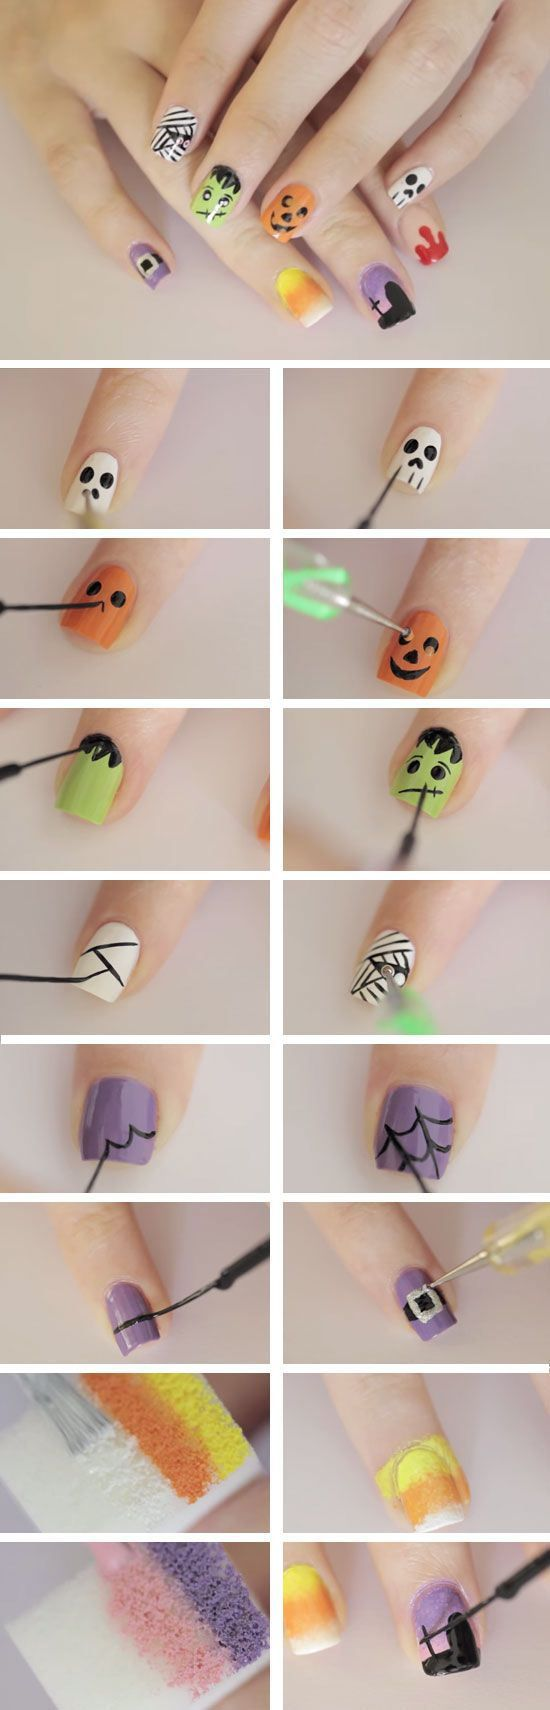 """Halloween sulle unghie: 6+ idee per essere in tema senza travestirsi!"" (Halloween nails: 6+ ideas to be on topic without disguise!)"